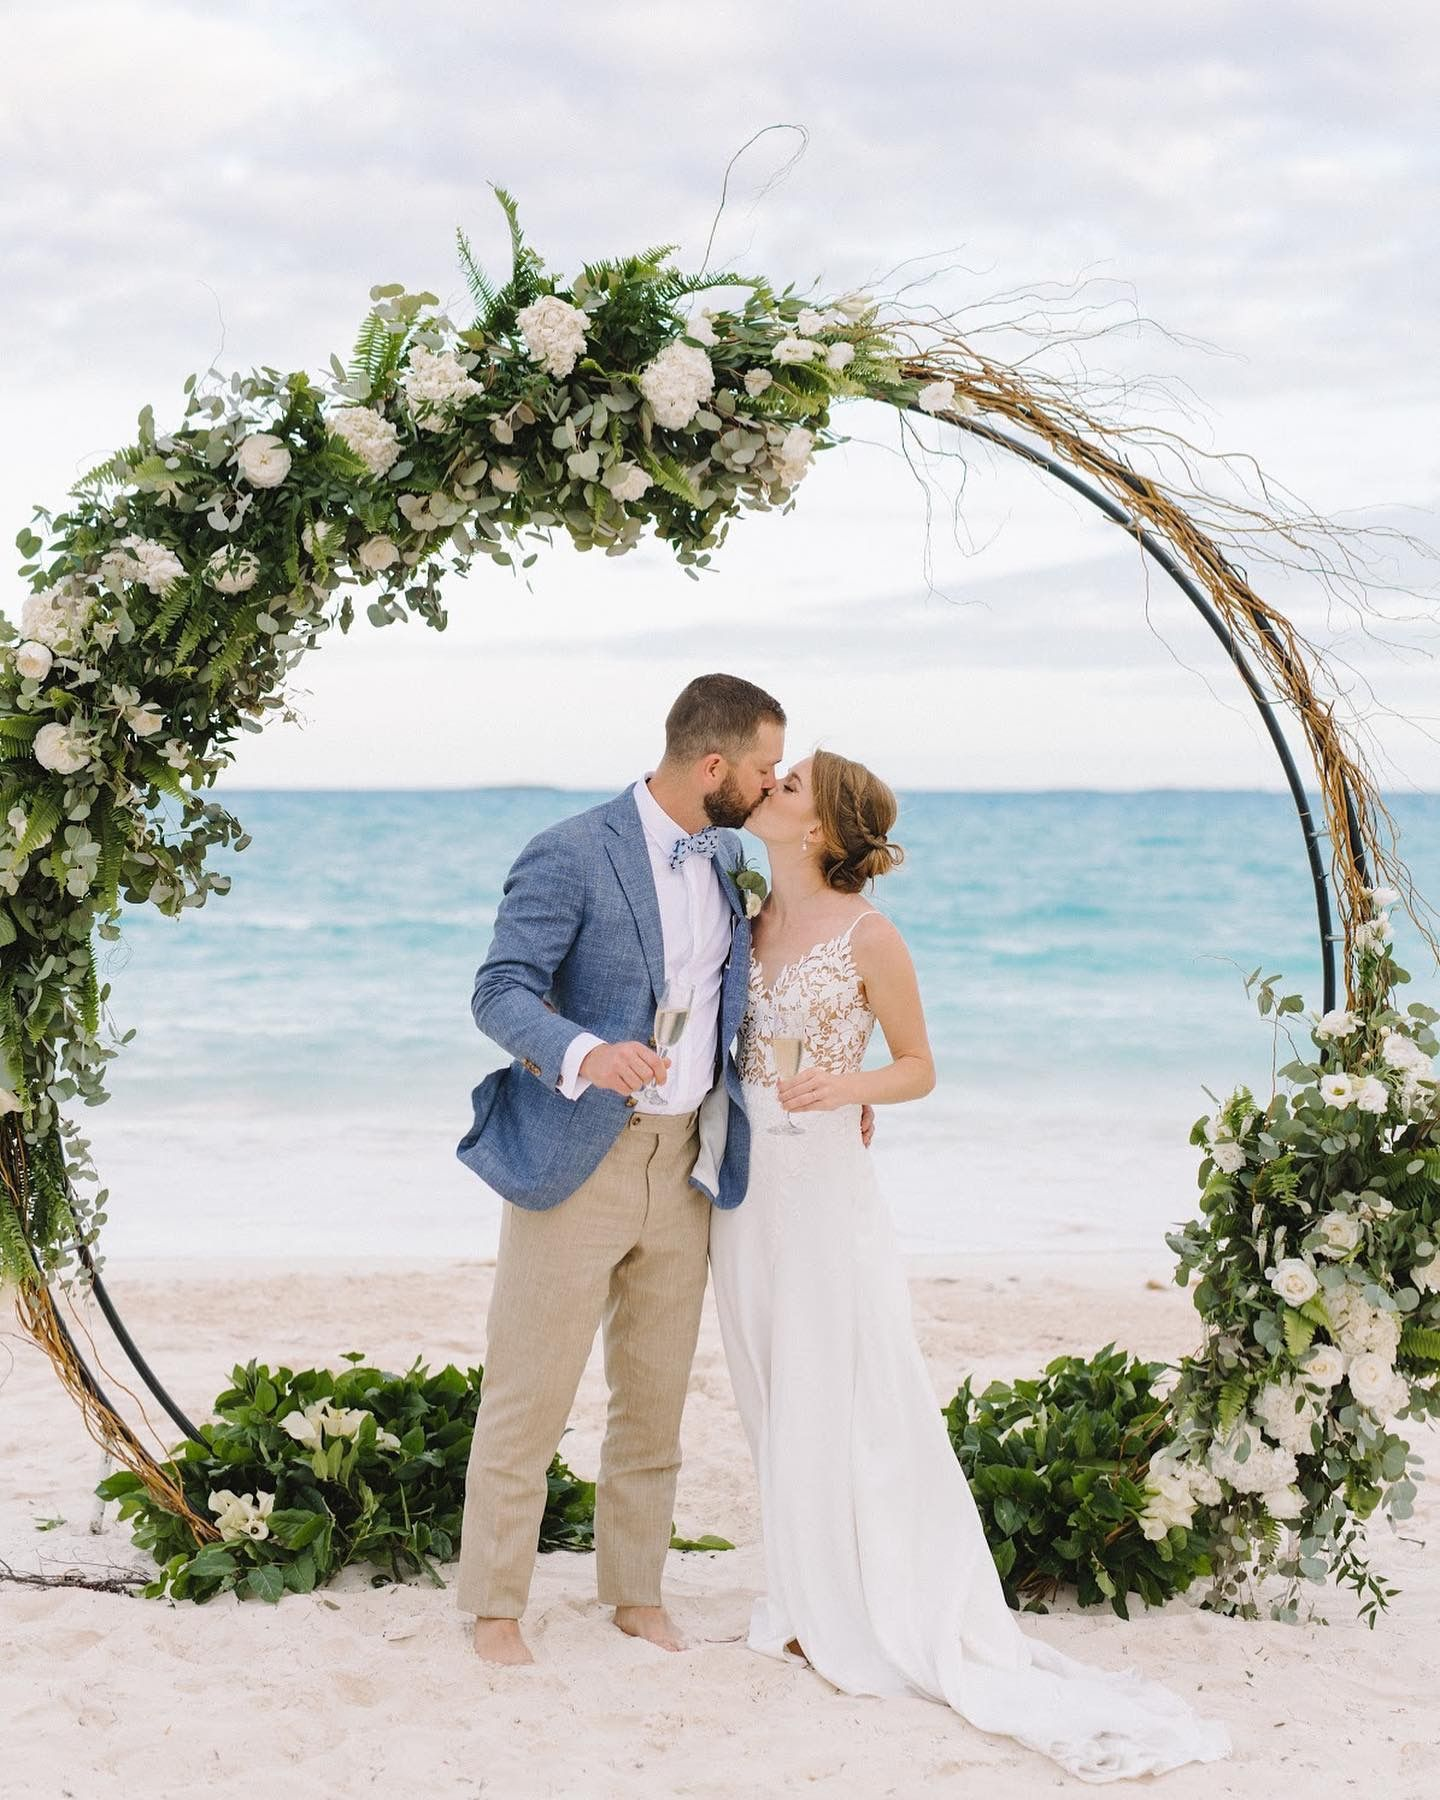 Wedding Venues In Bahamas Caribbean Wedding Venues In 2020 Bahamas Wedding Venues Wedding Venues Beach Bahamas Wedding